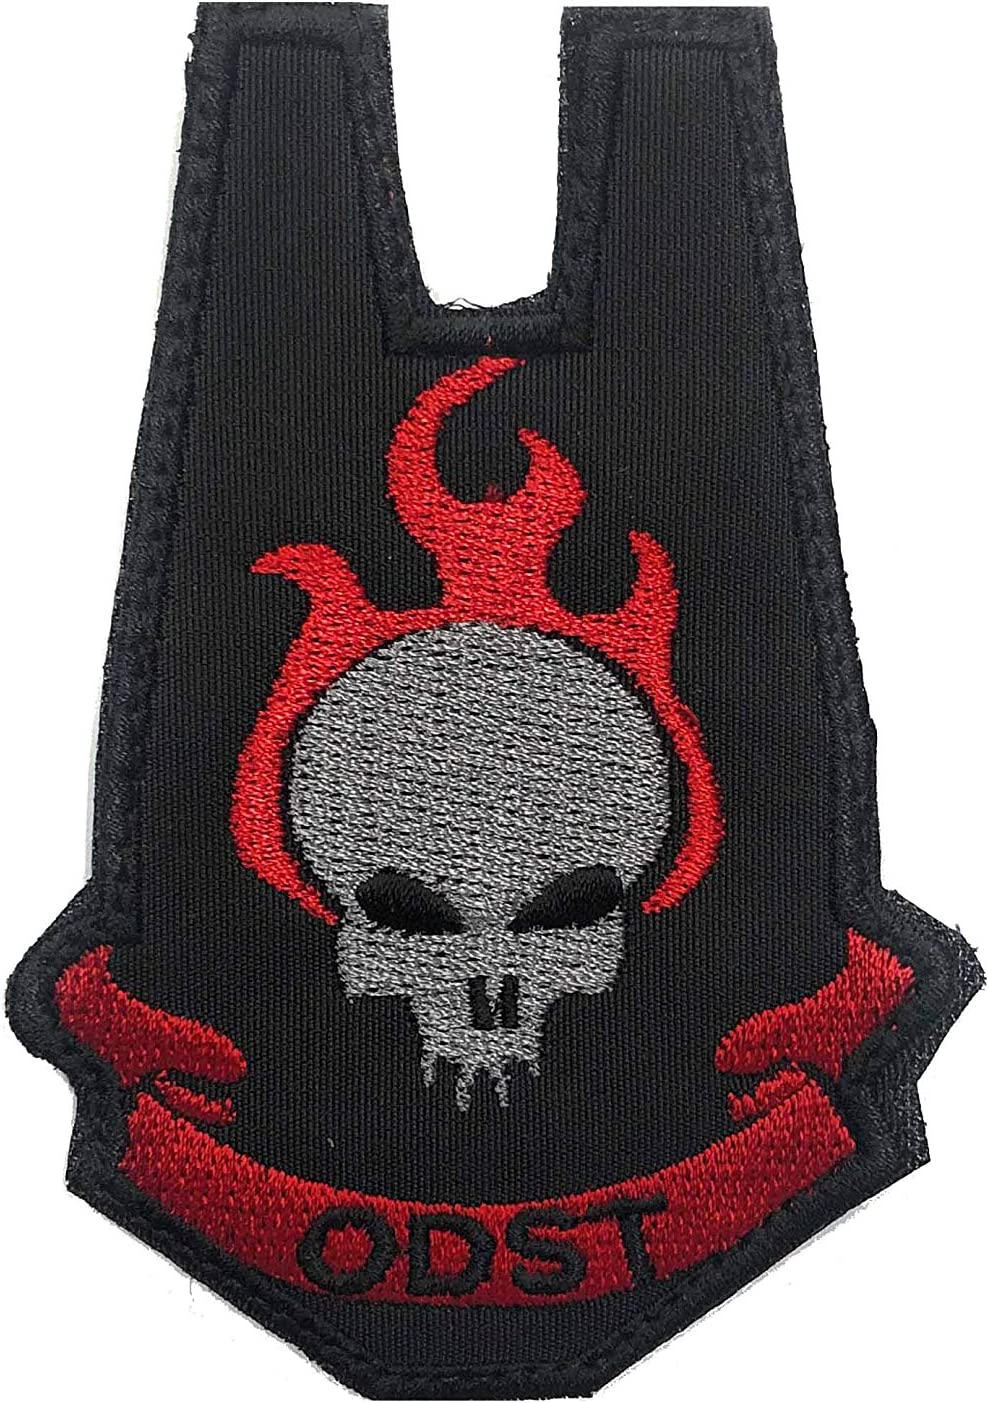 Halo ODST Patch Black